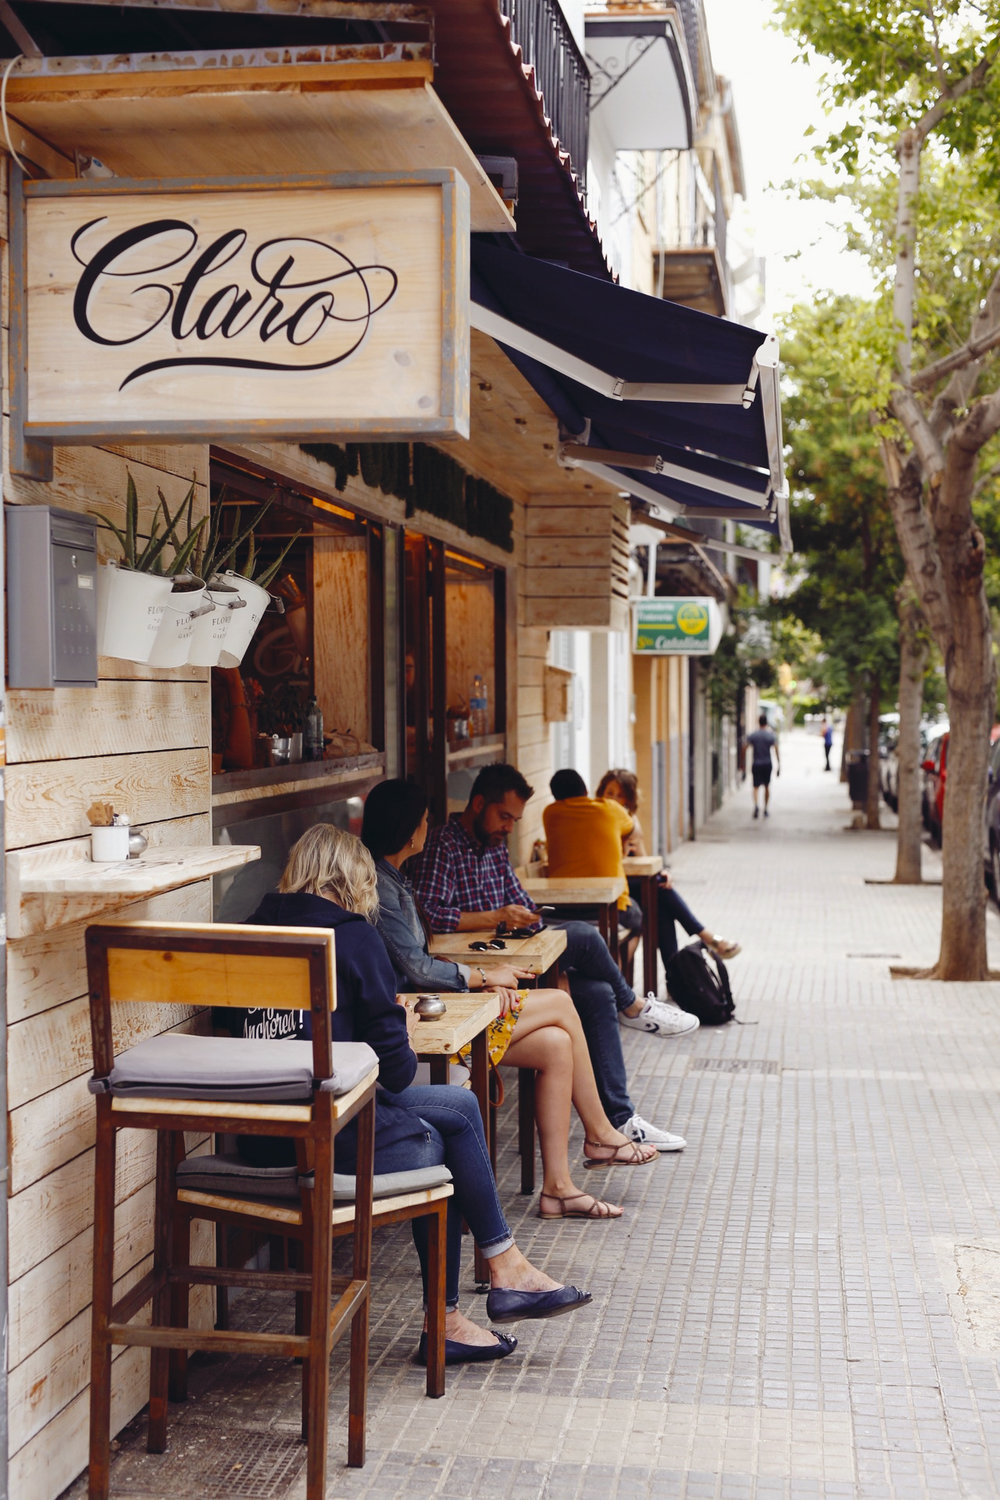 Café Claro in Palma, Mallorca, June 2018